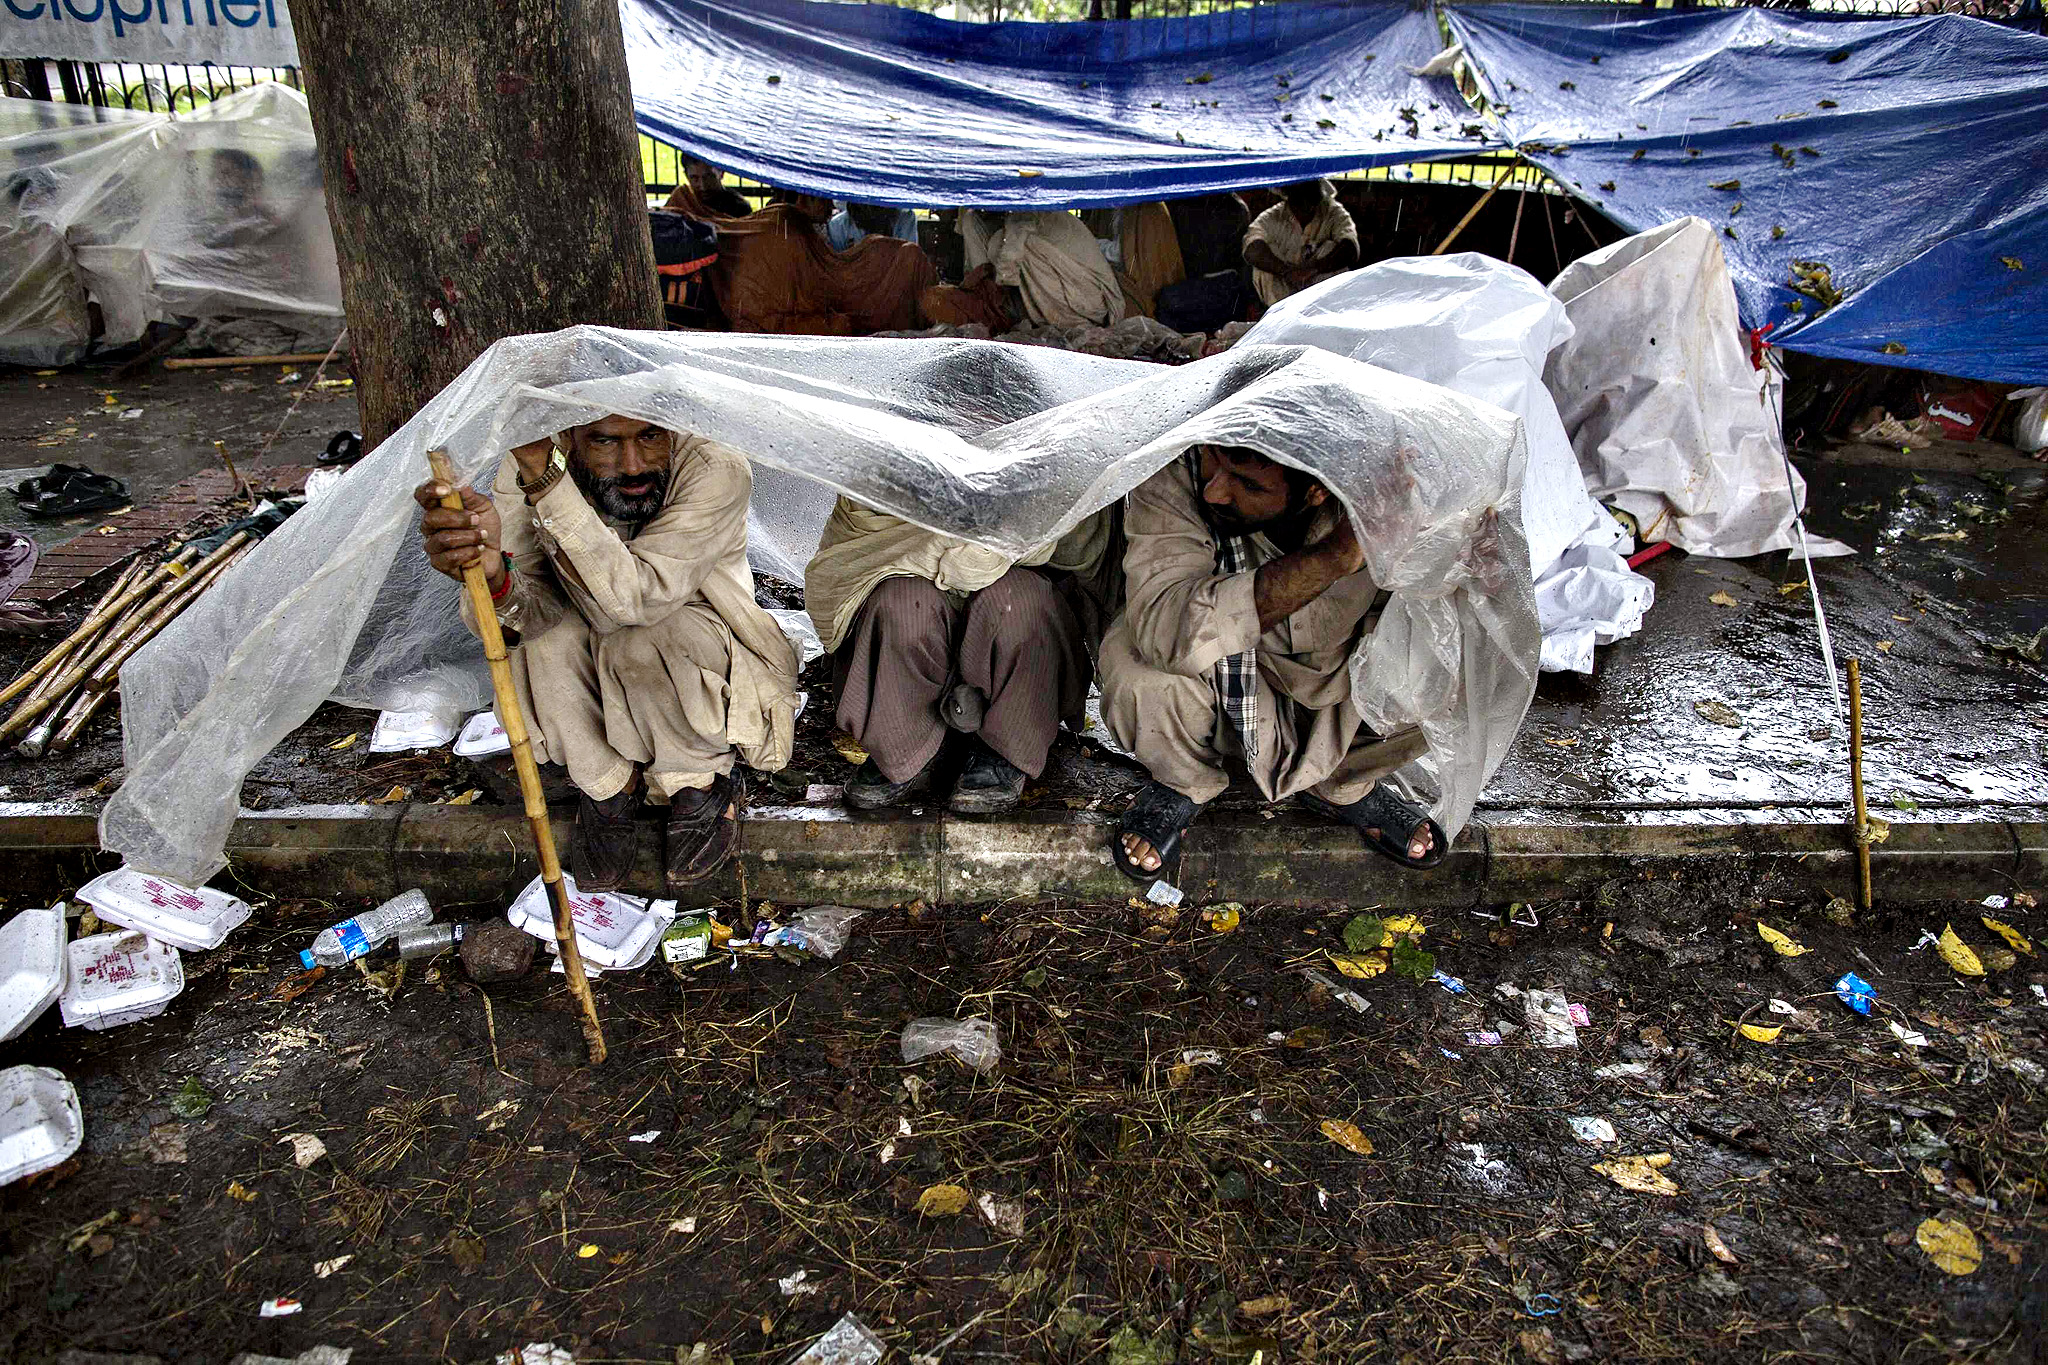 Anti-government protesters take shelter under plastic sheet during heavy rain in morning, in front of President's house in the Red Zone during the Revolution March in Islamabad...Anti-government protesters take shelter under a plastic sheet during heavy rain in the morning, in front of the President's house in the Red Zone during the Revolution March in Islamabad September 4, 2014. Pakistan's protest leaders demanding Prime Minister Nawaz Sharif's resignation prepared to resume talks with the government on Wednesday, reviving hopes for a negotiated solution to a crisis that has shaken the coup-prone nation.